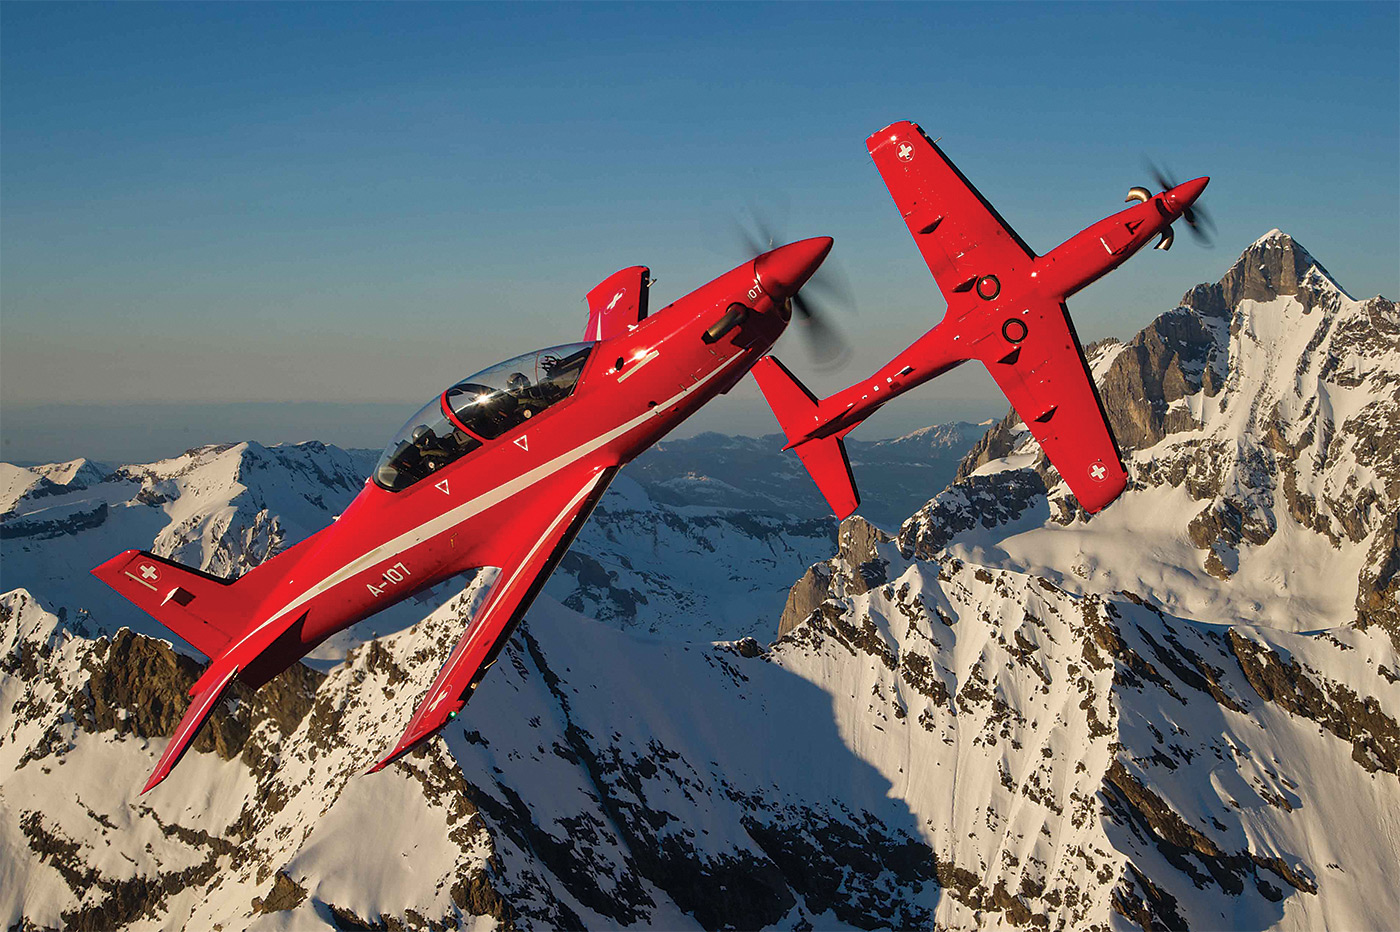 With its PC-21 military trainer, Pilatus has blended in-air and in-simulator experiences, creating a form of high fidelity, in-flight simulation. Pilatus Photo